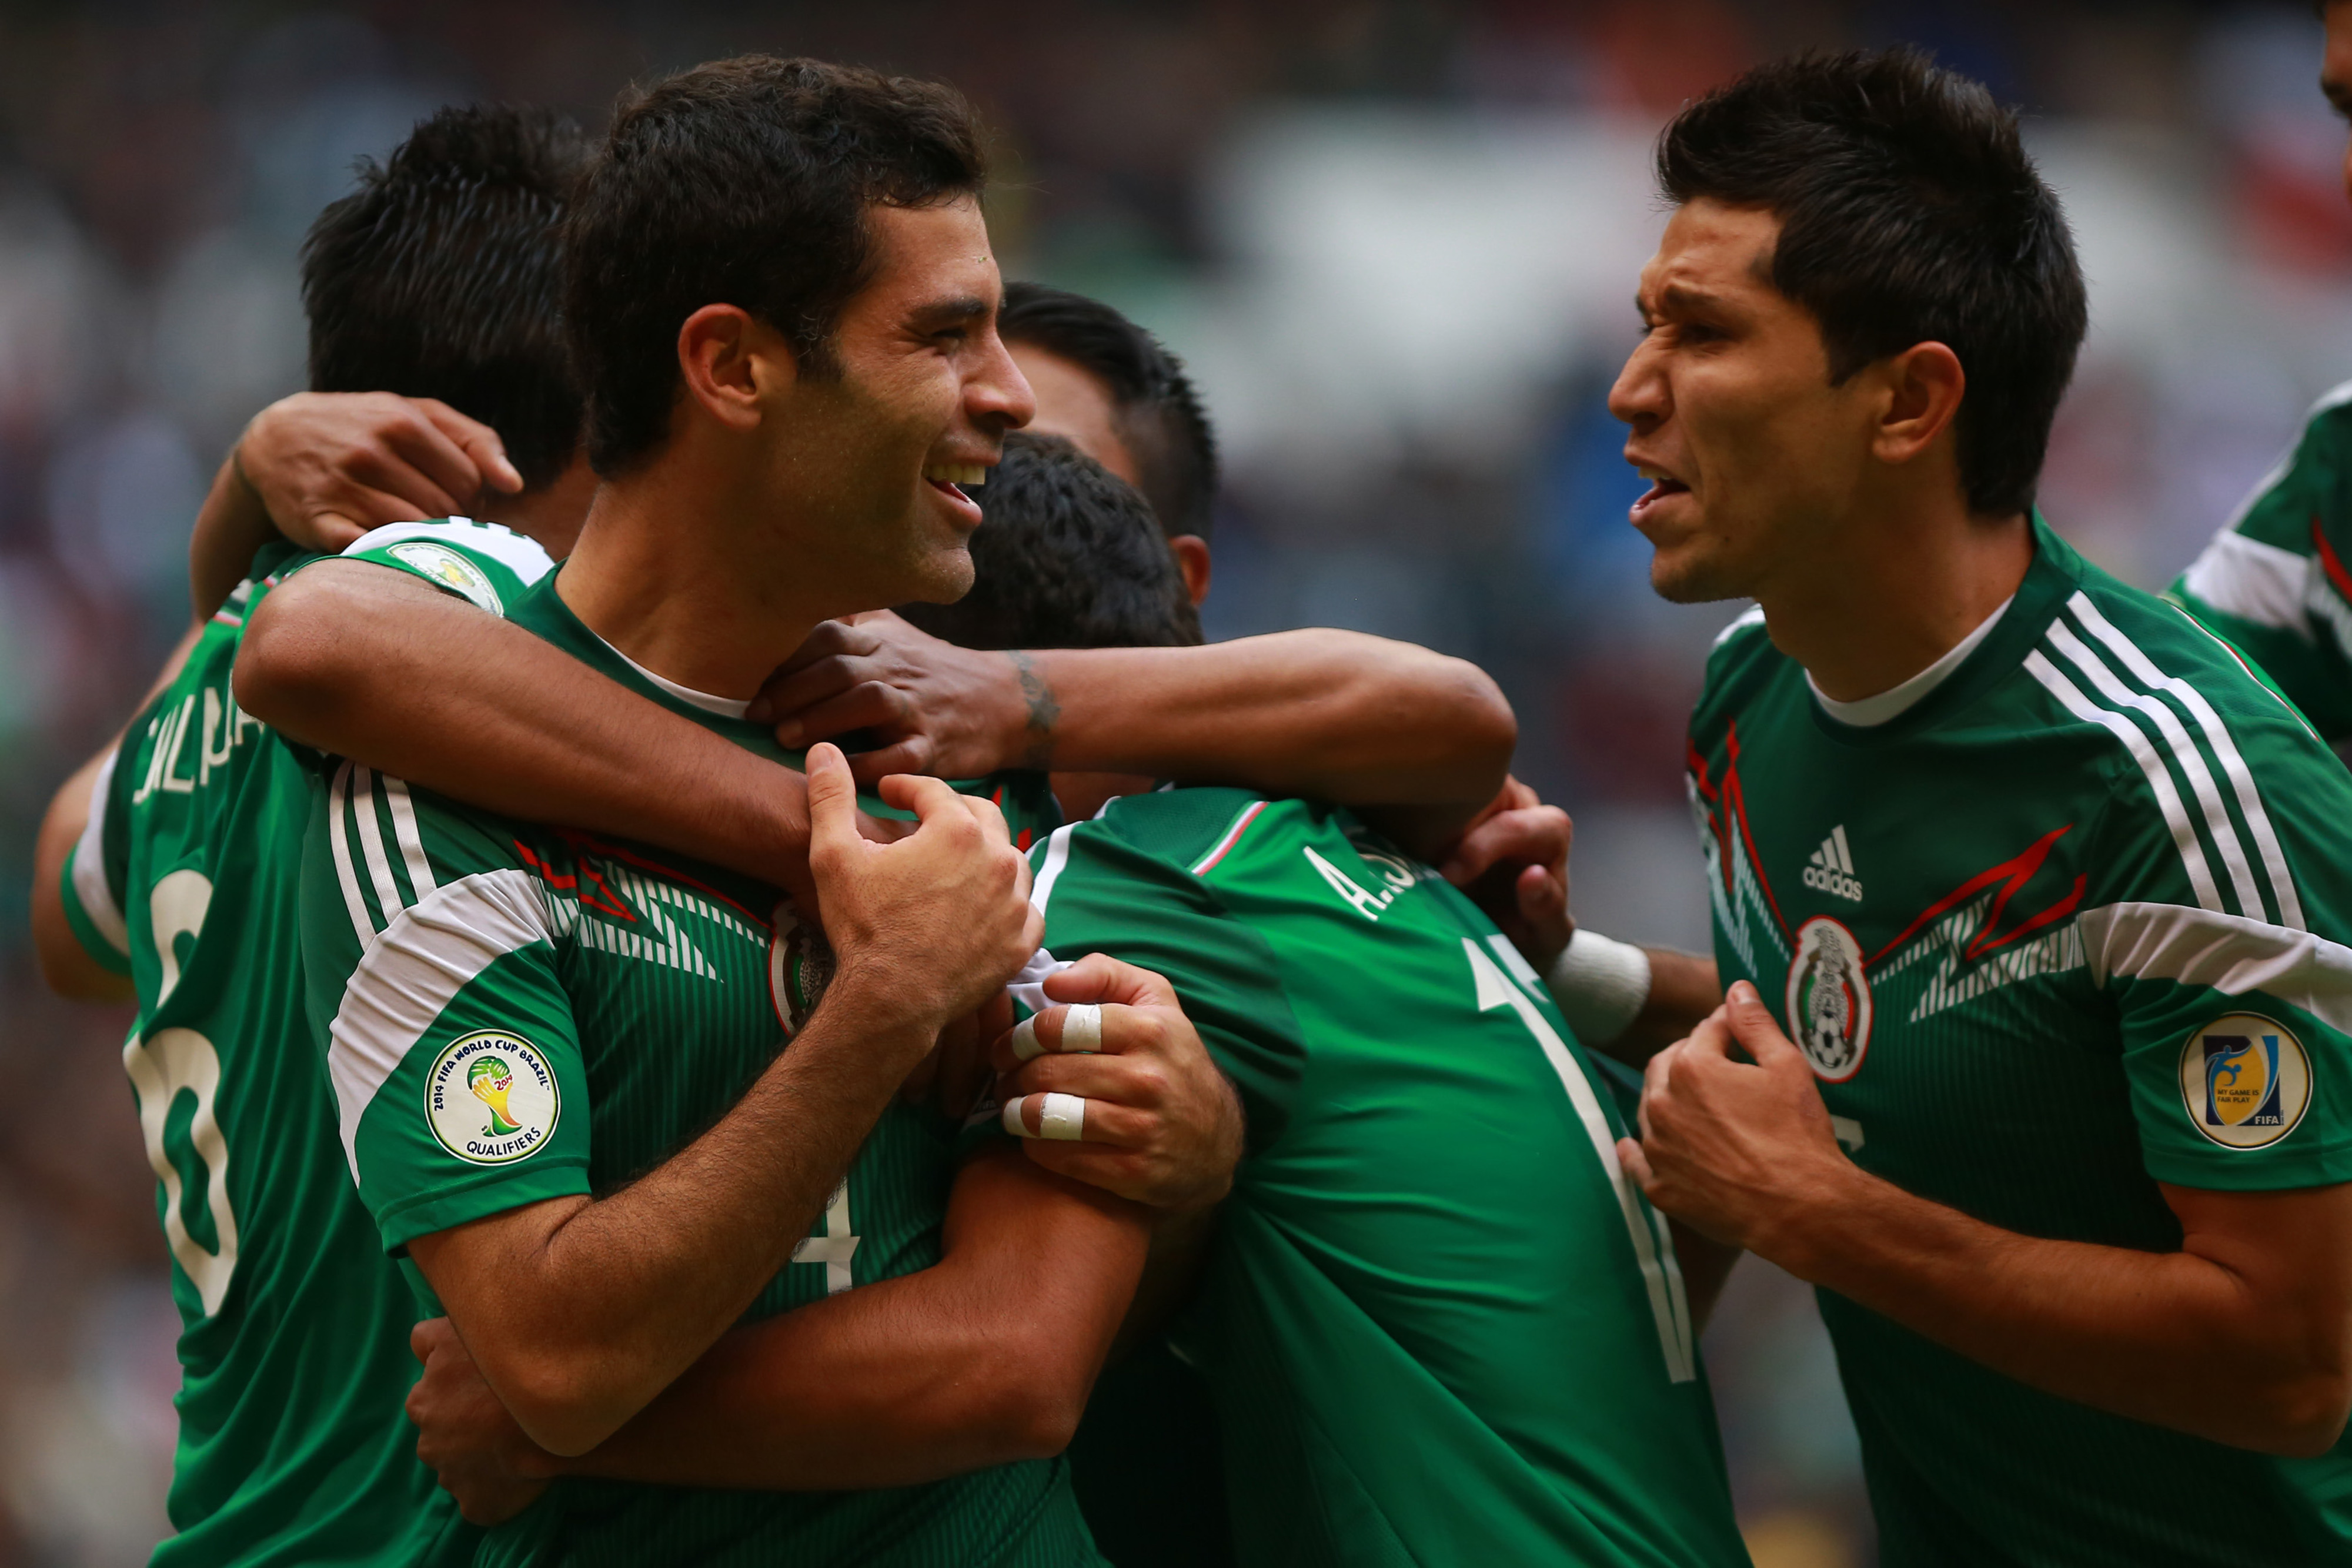 Mexico will be a threat come World Cup time